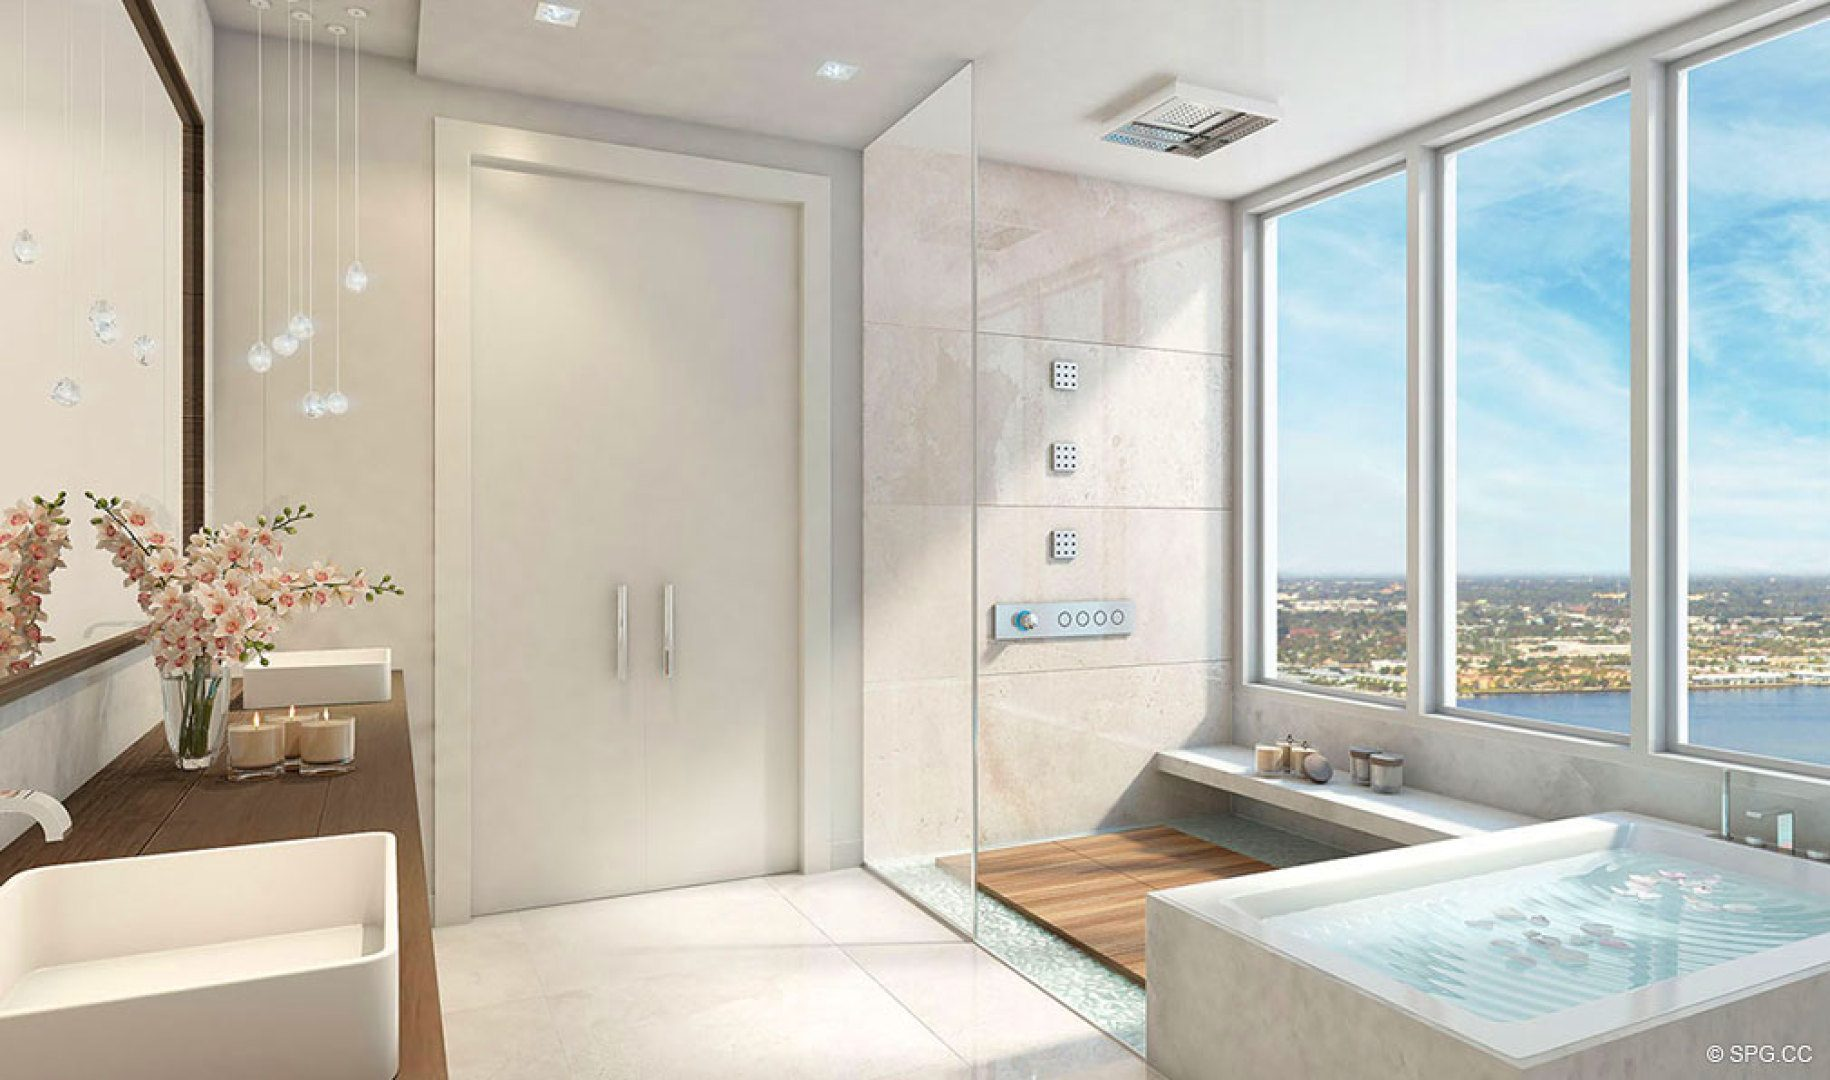 Seabreeze Bathroom Design at 5000 North Ocean, Luxury Oceanfront Condos in Riviera Beach